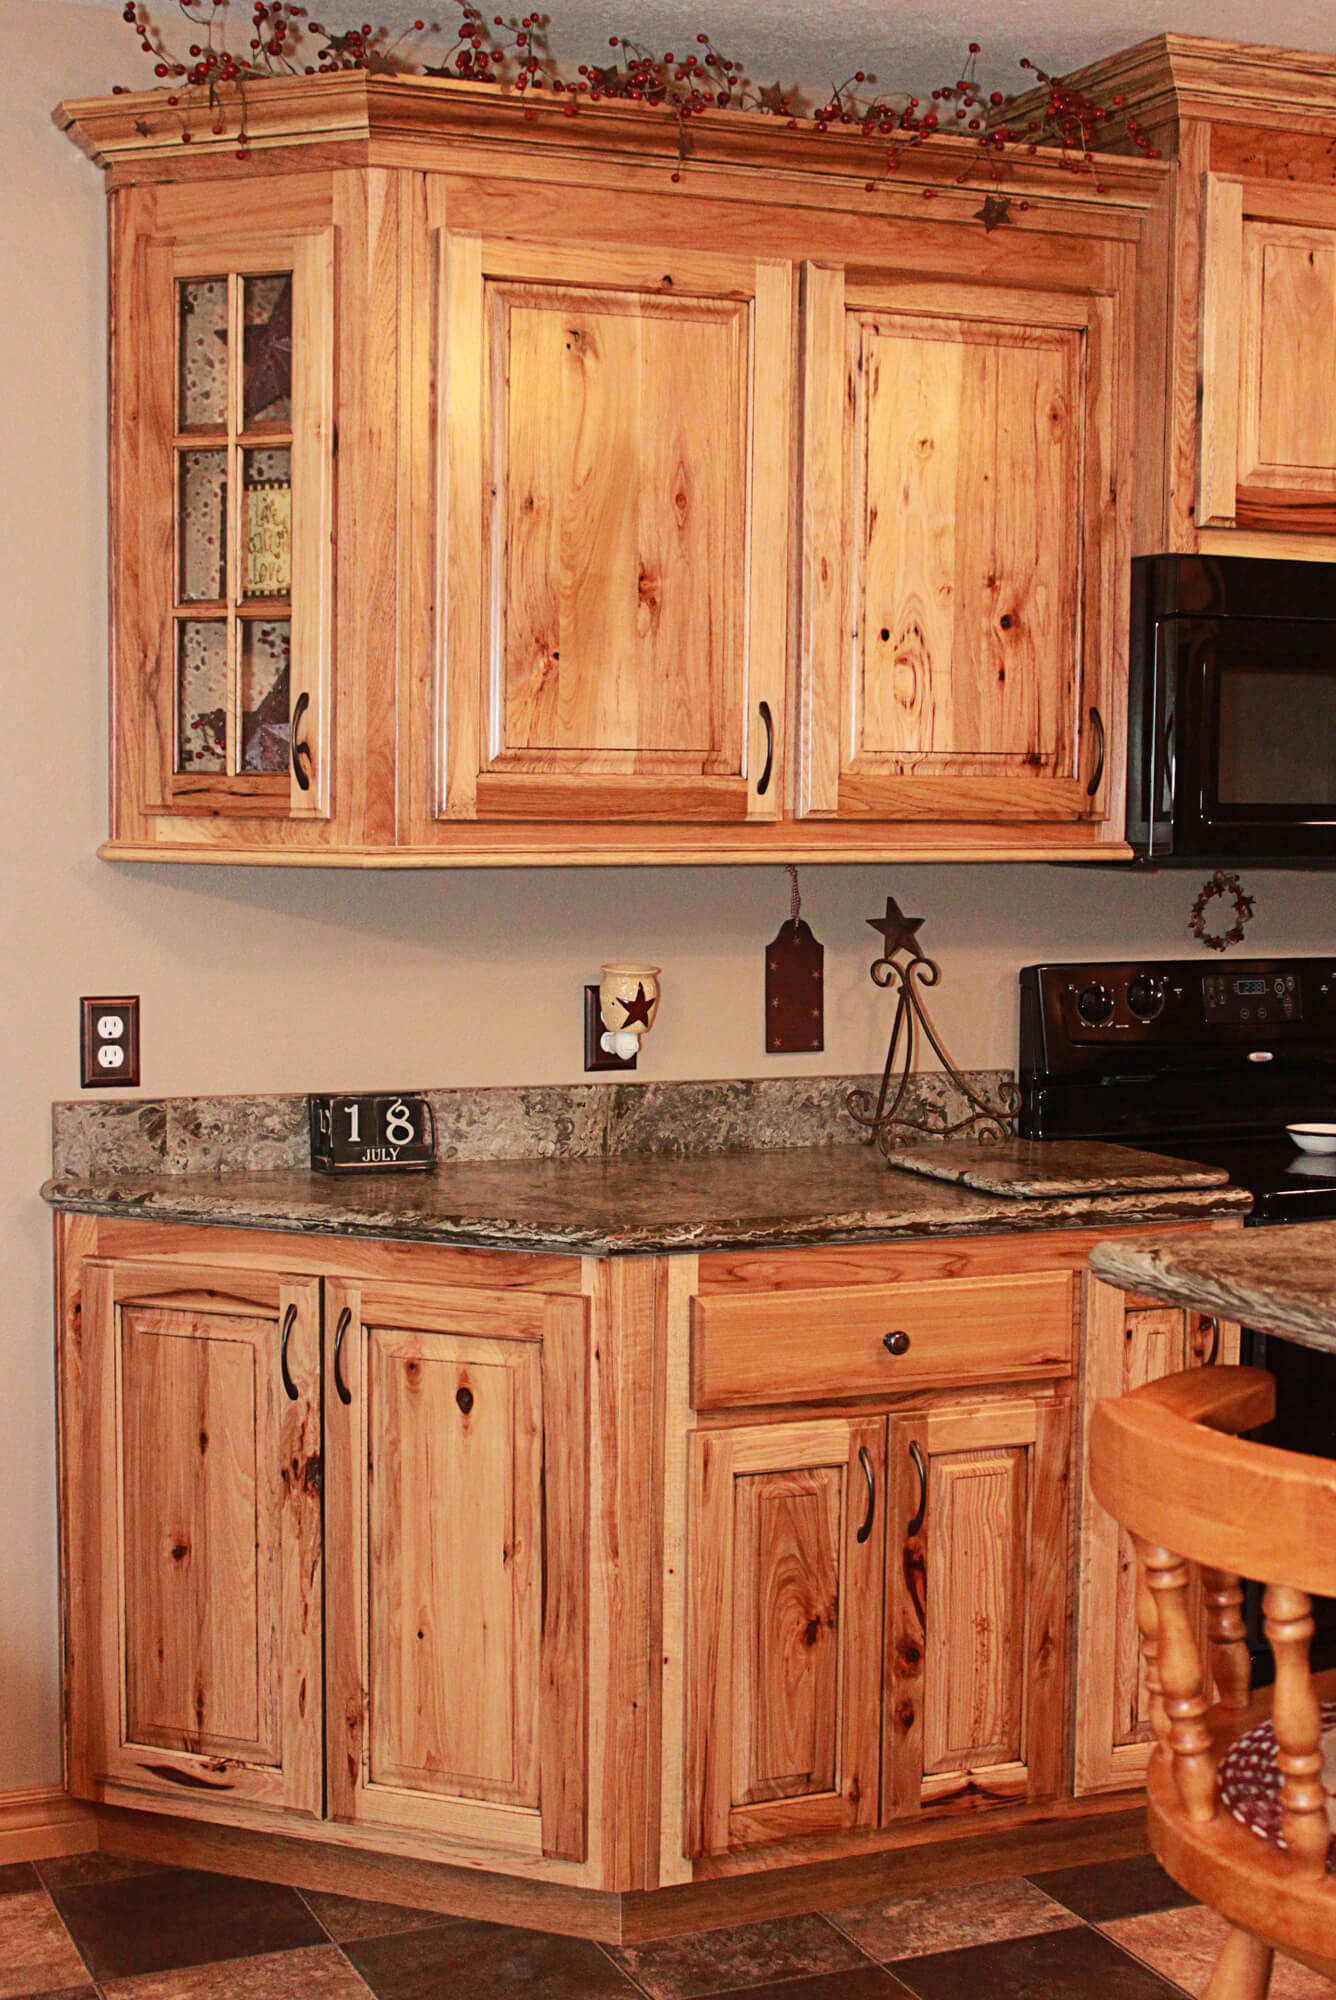 The cabinets plus rustic hickory kitchen cabinets for Kitchen cabinets rustic